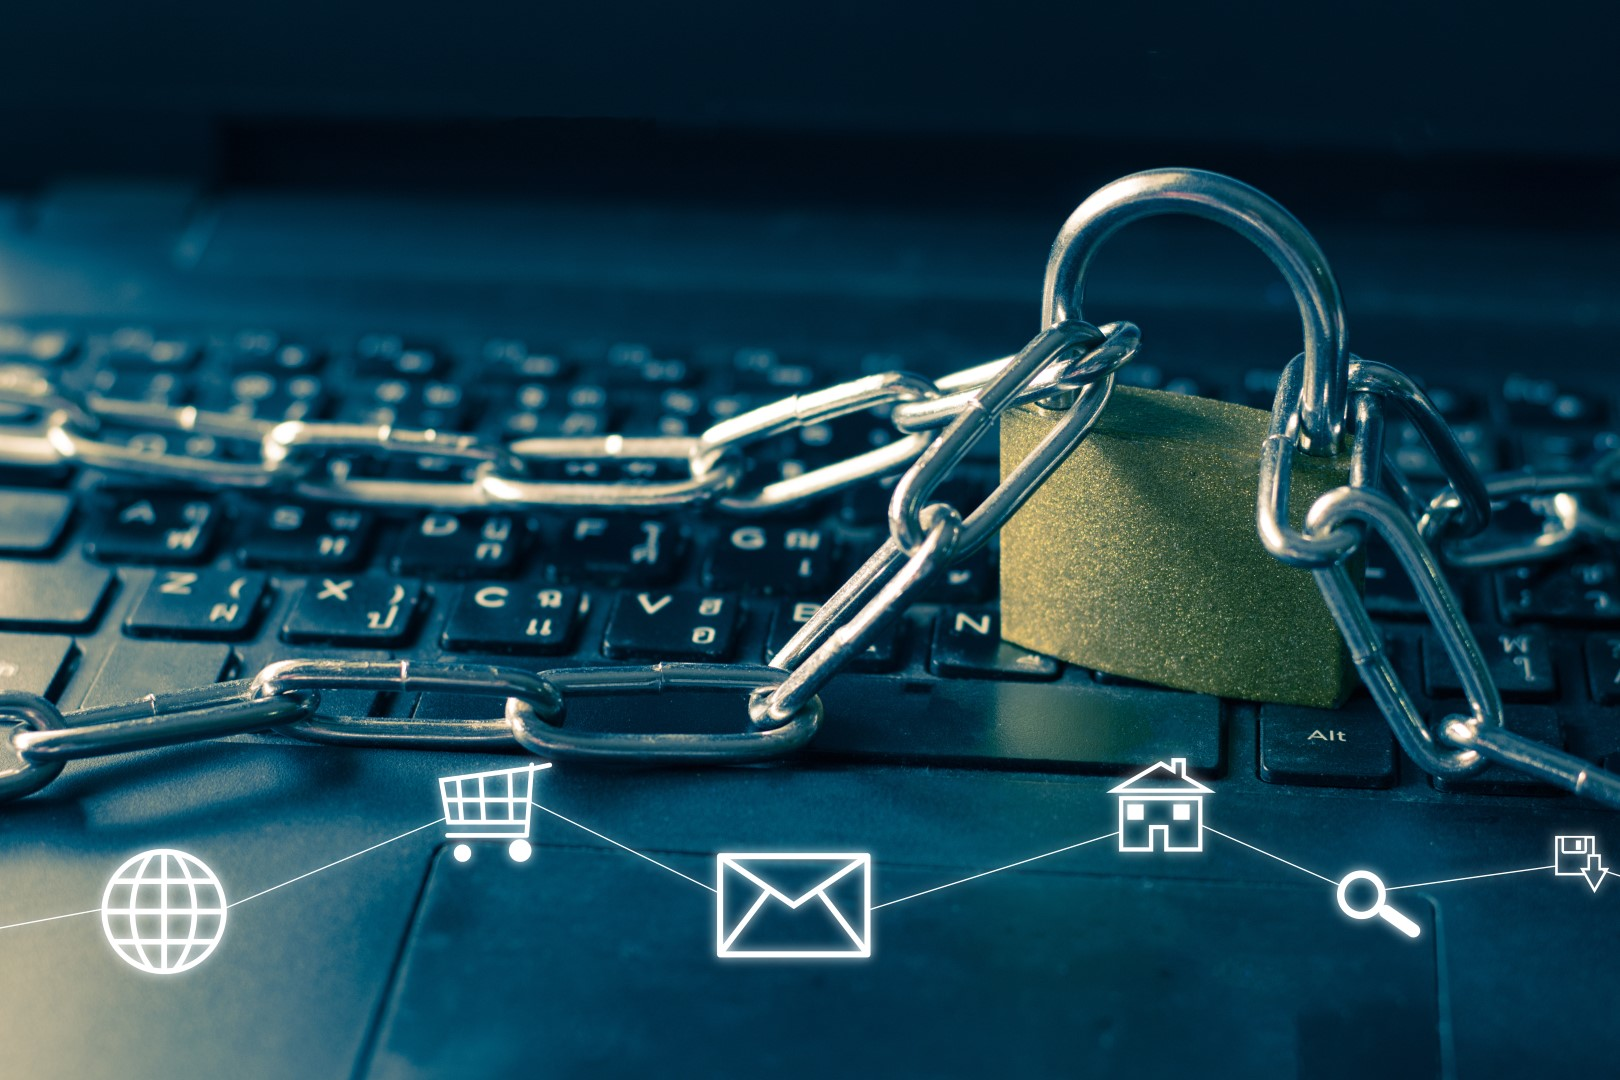 CALIFORNIA, VIRGINIA TAKE STEPS TO BOLSTER CYBERSECURITY STANCE